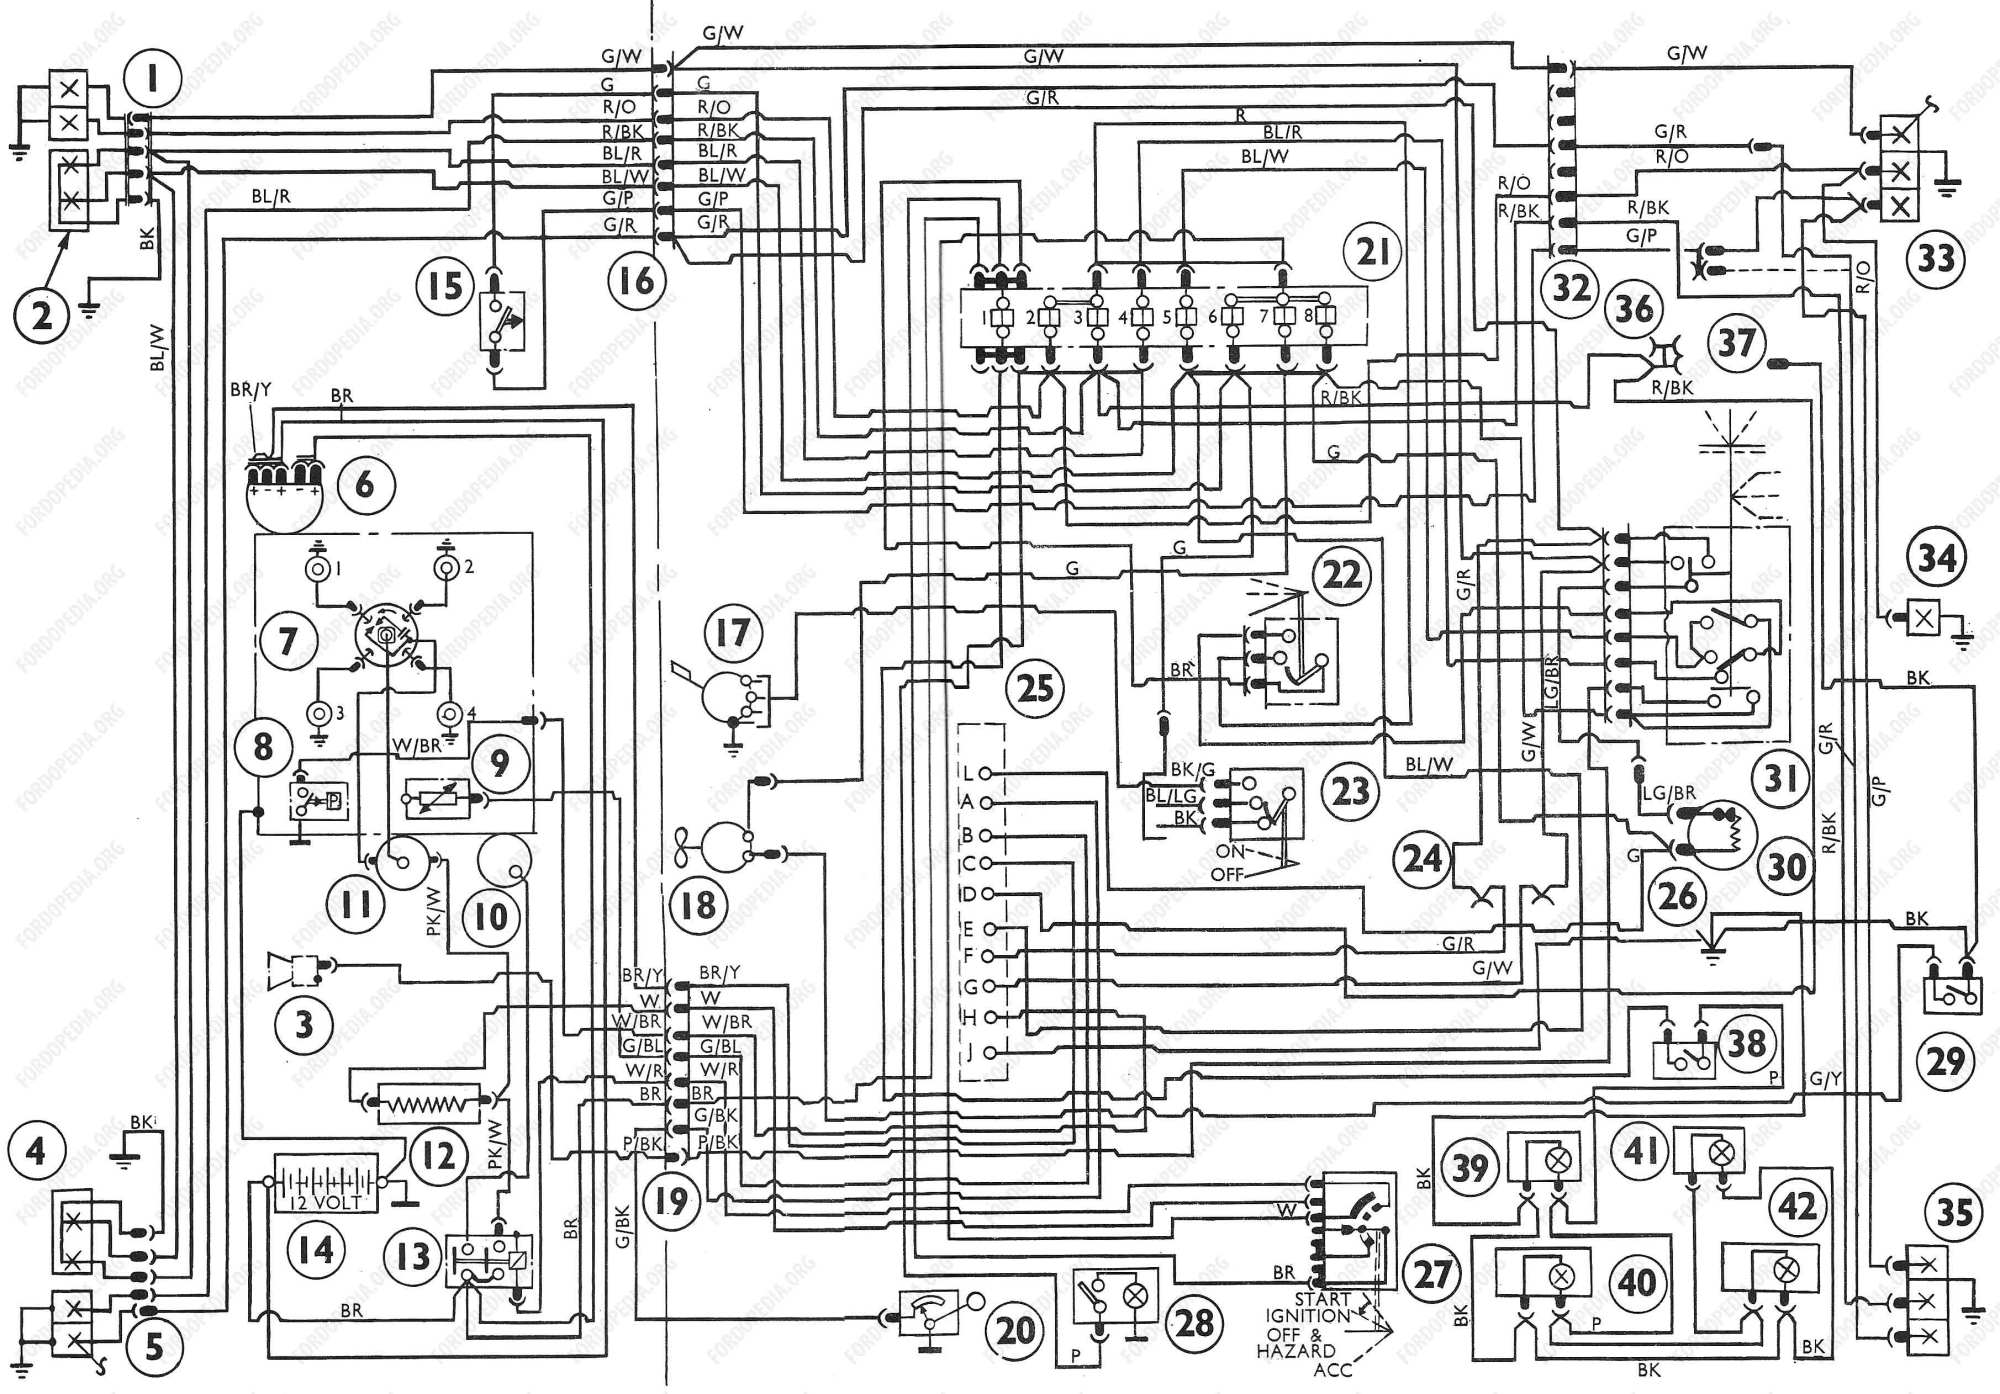 hight resolution of hight resolution of 2012 ford transit connect wiring diagrams wiring schematic rh 14 yehonalatapes de 2012